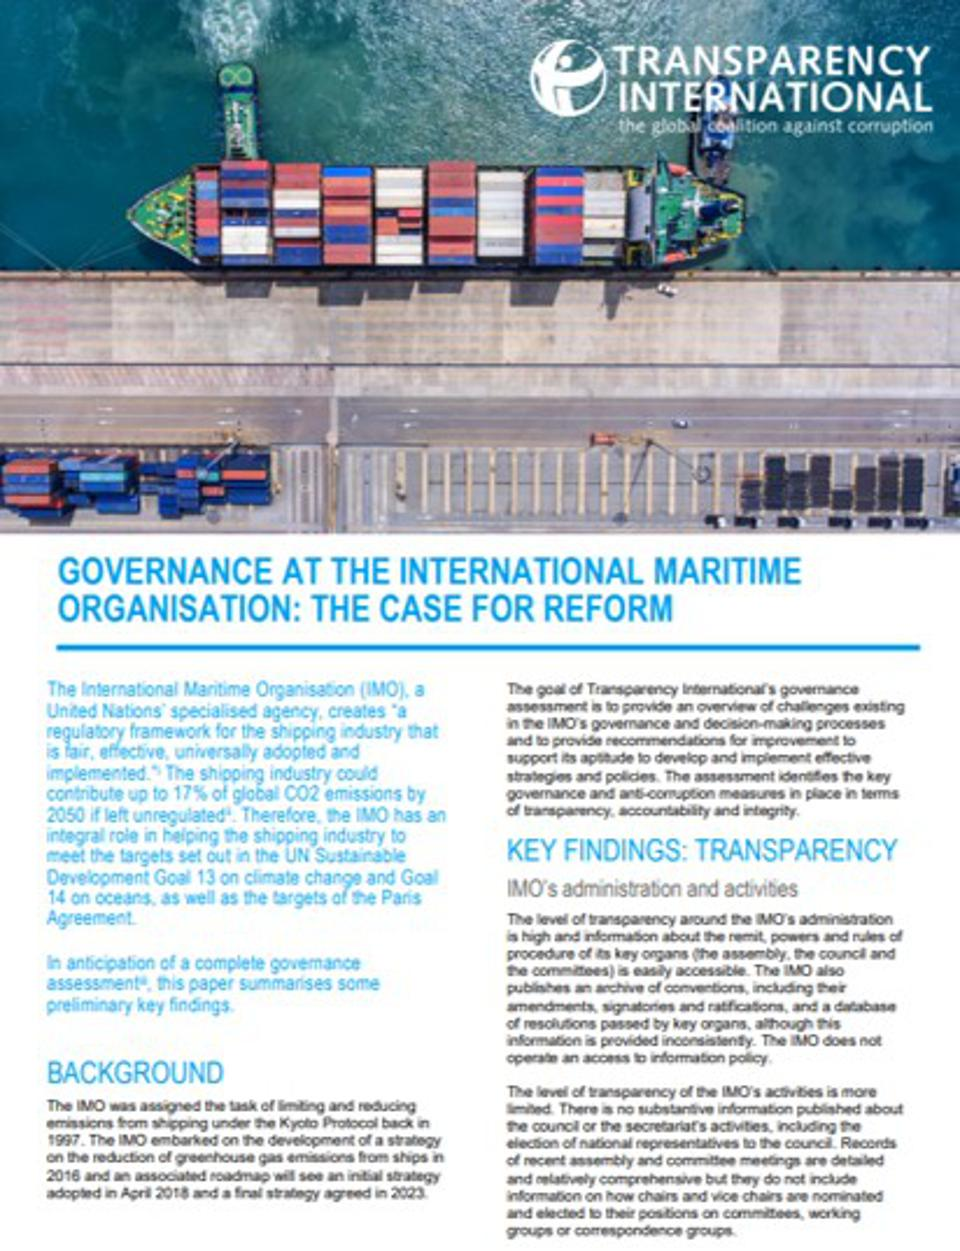 The 2018 Transparency International Reform calling for urgent reforms to the International Maritime Organization, has largely been ignored by the UN agency, with most recommendations not implemented in a meaningful way.